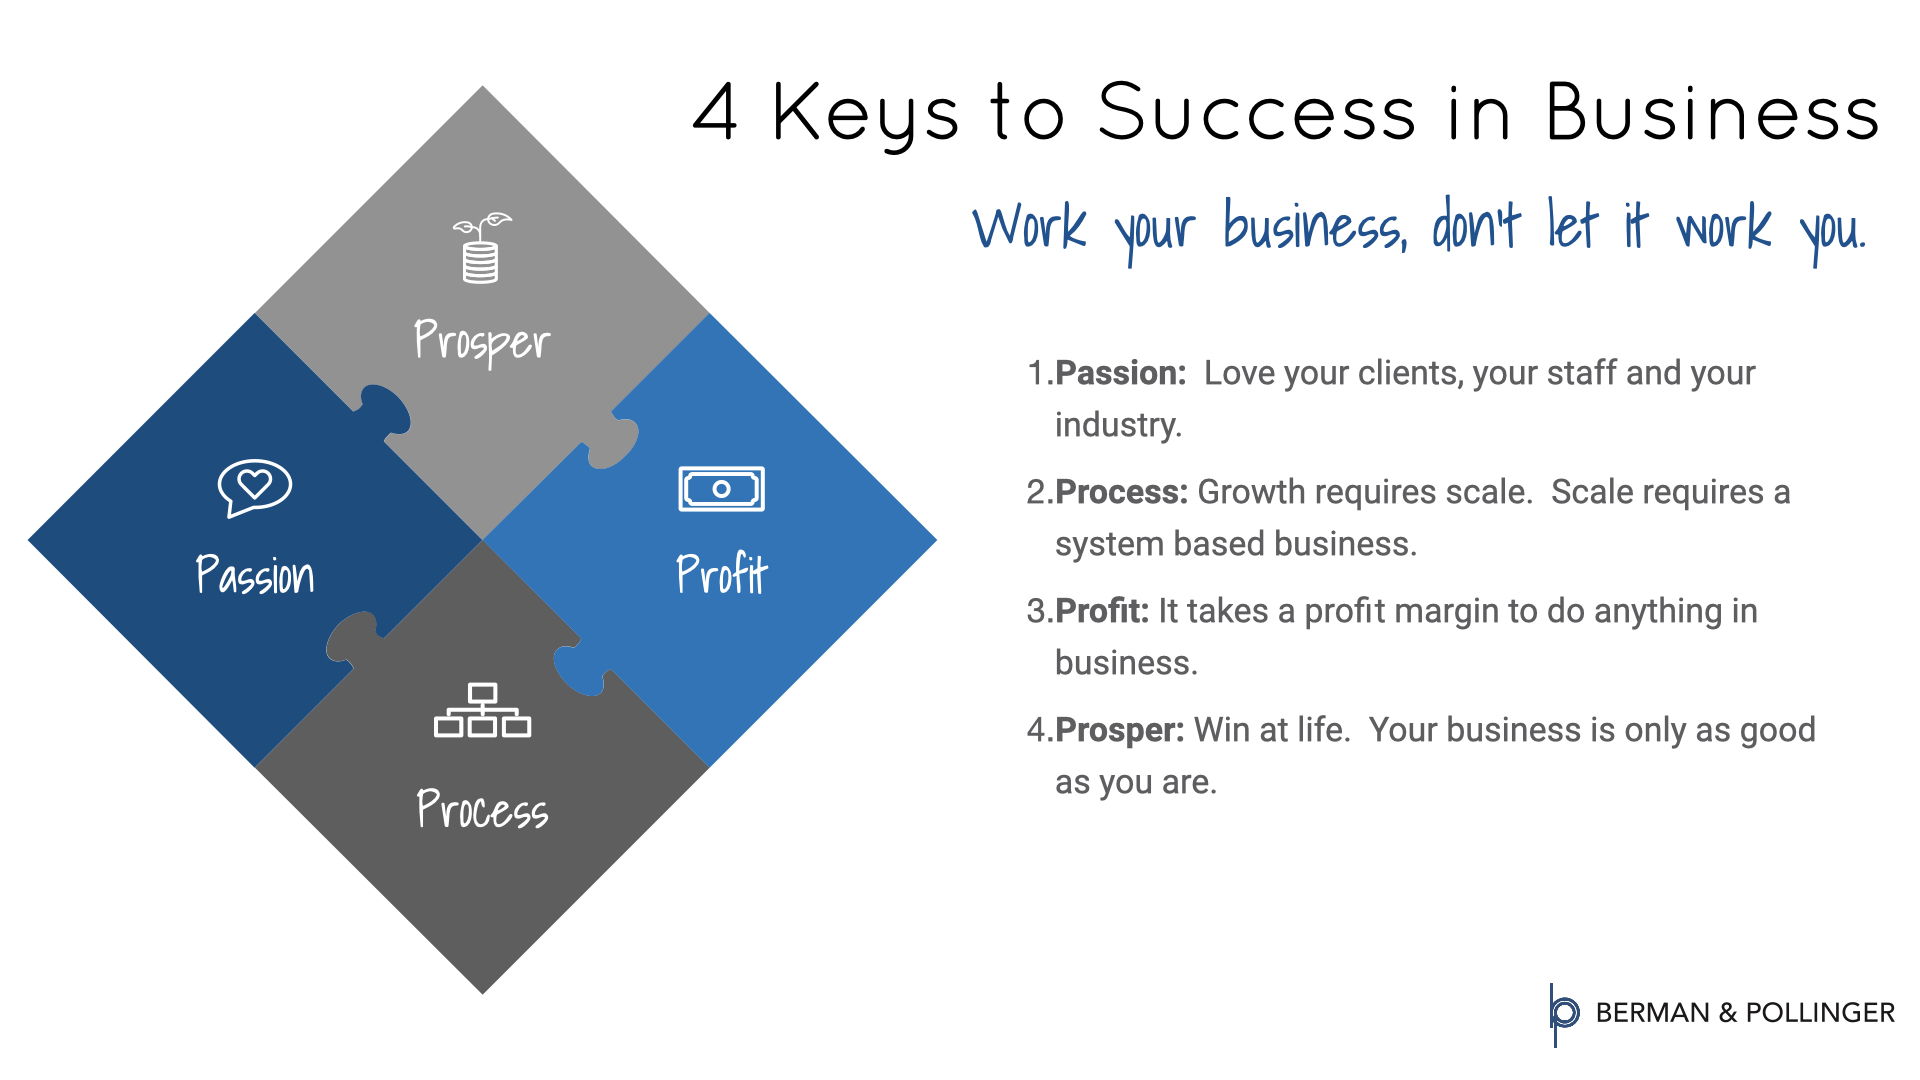 4 Keys to Success in Business